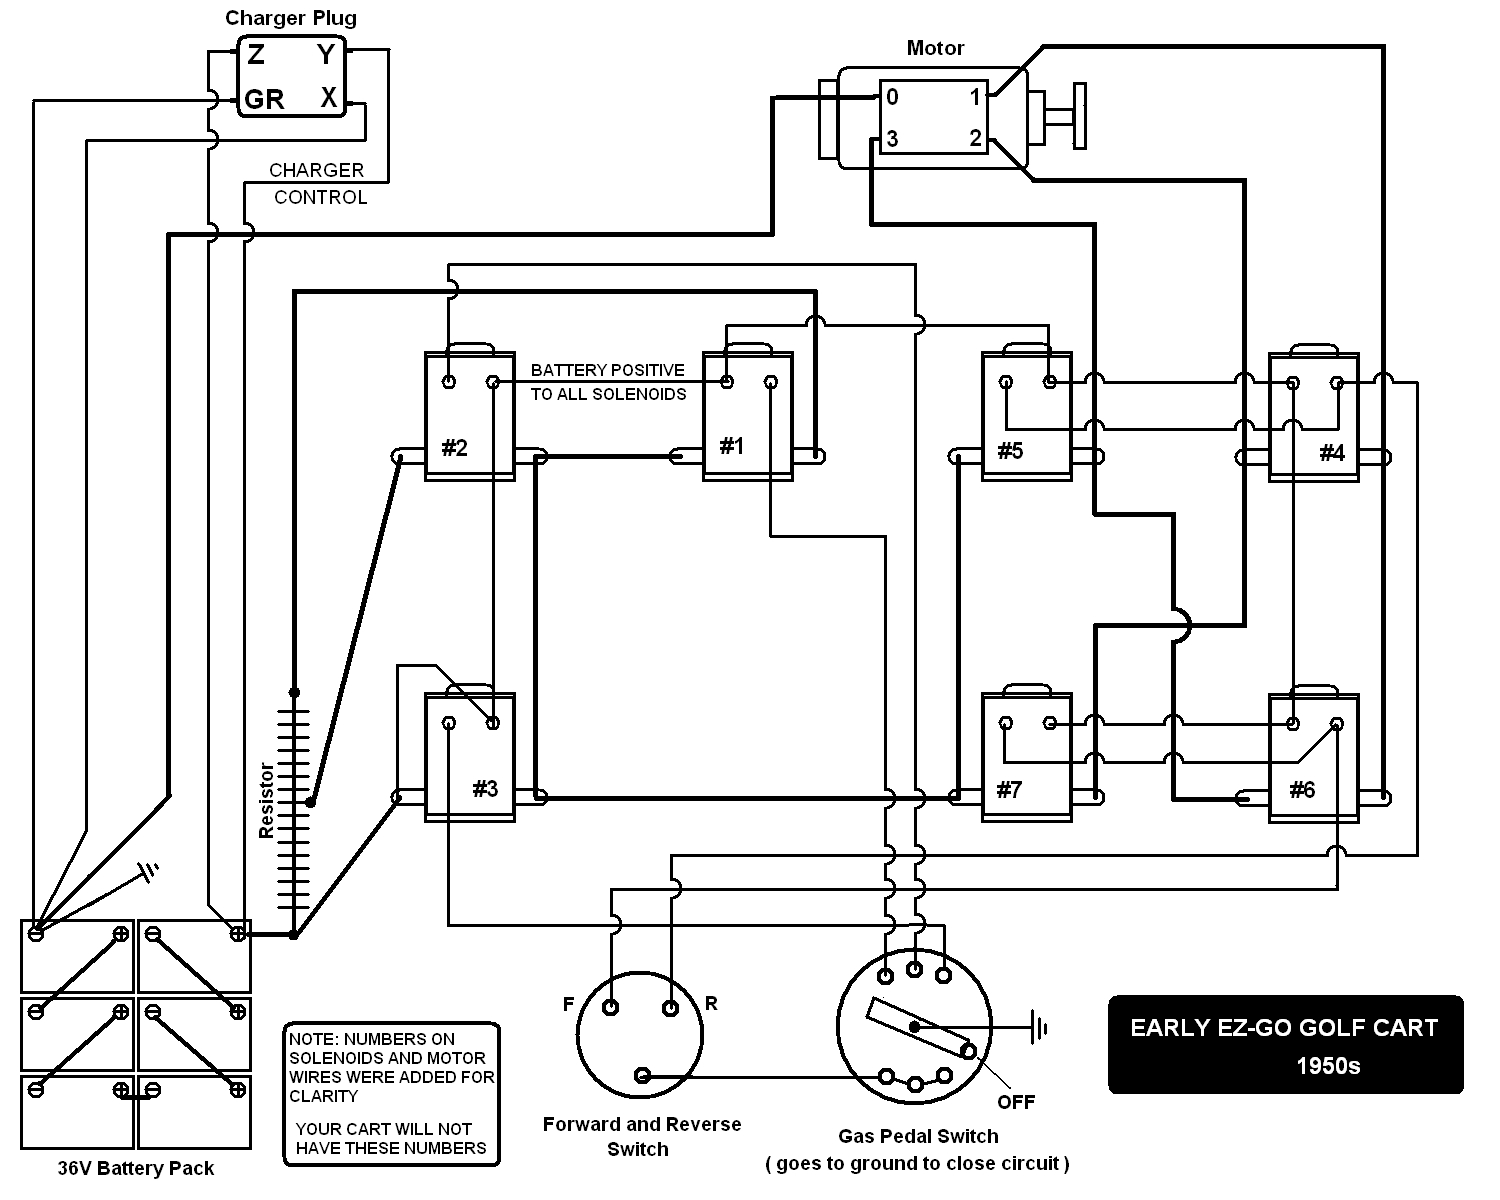 early_ezgo_wiring?resize=665%2C532 2000 ez go txt wiring diagram wiring diagram  at edmiracle.co